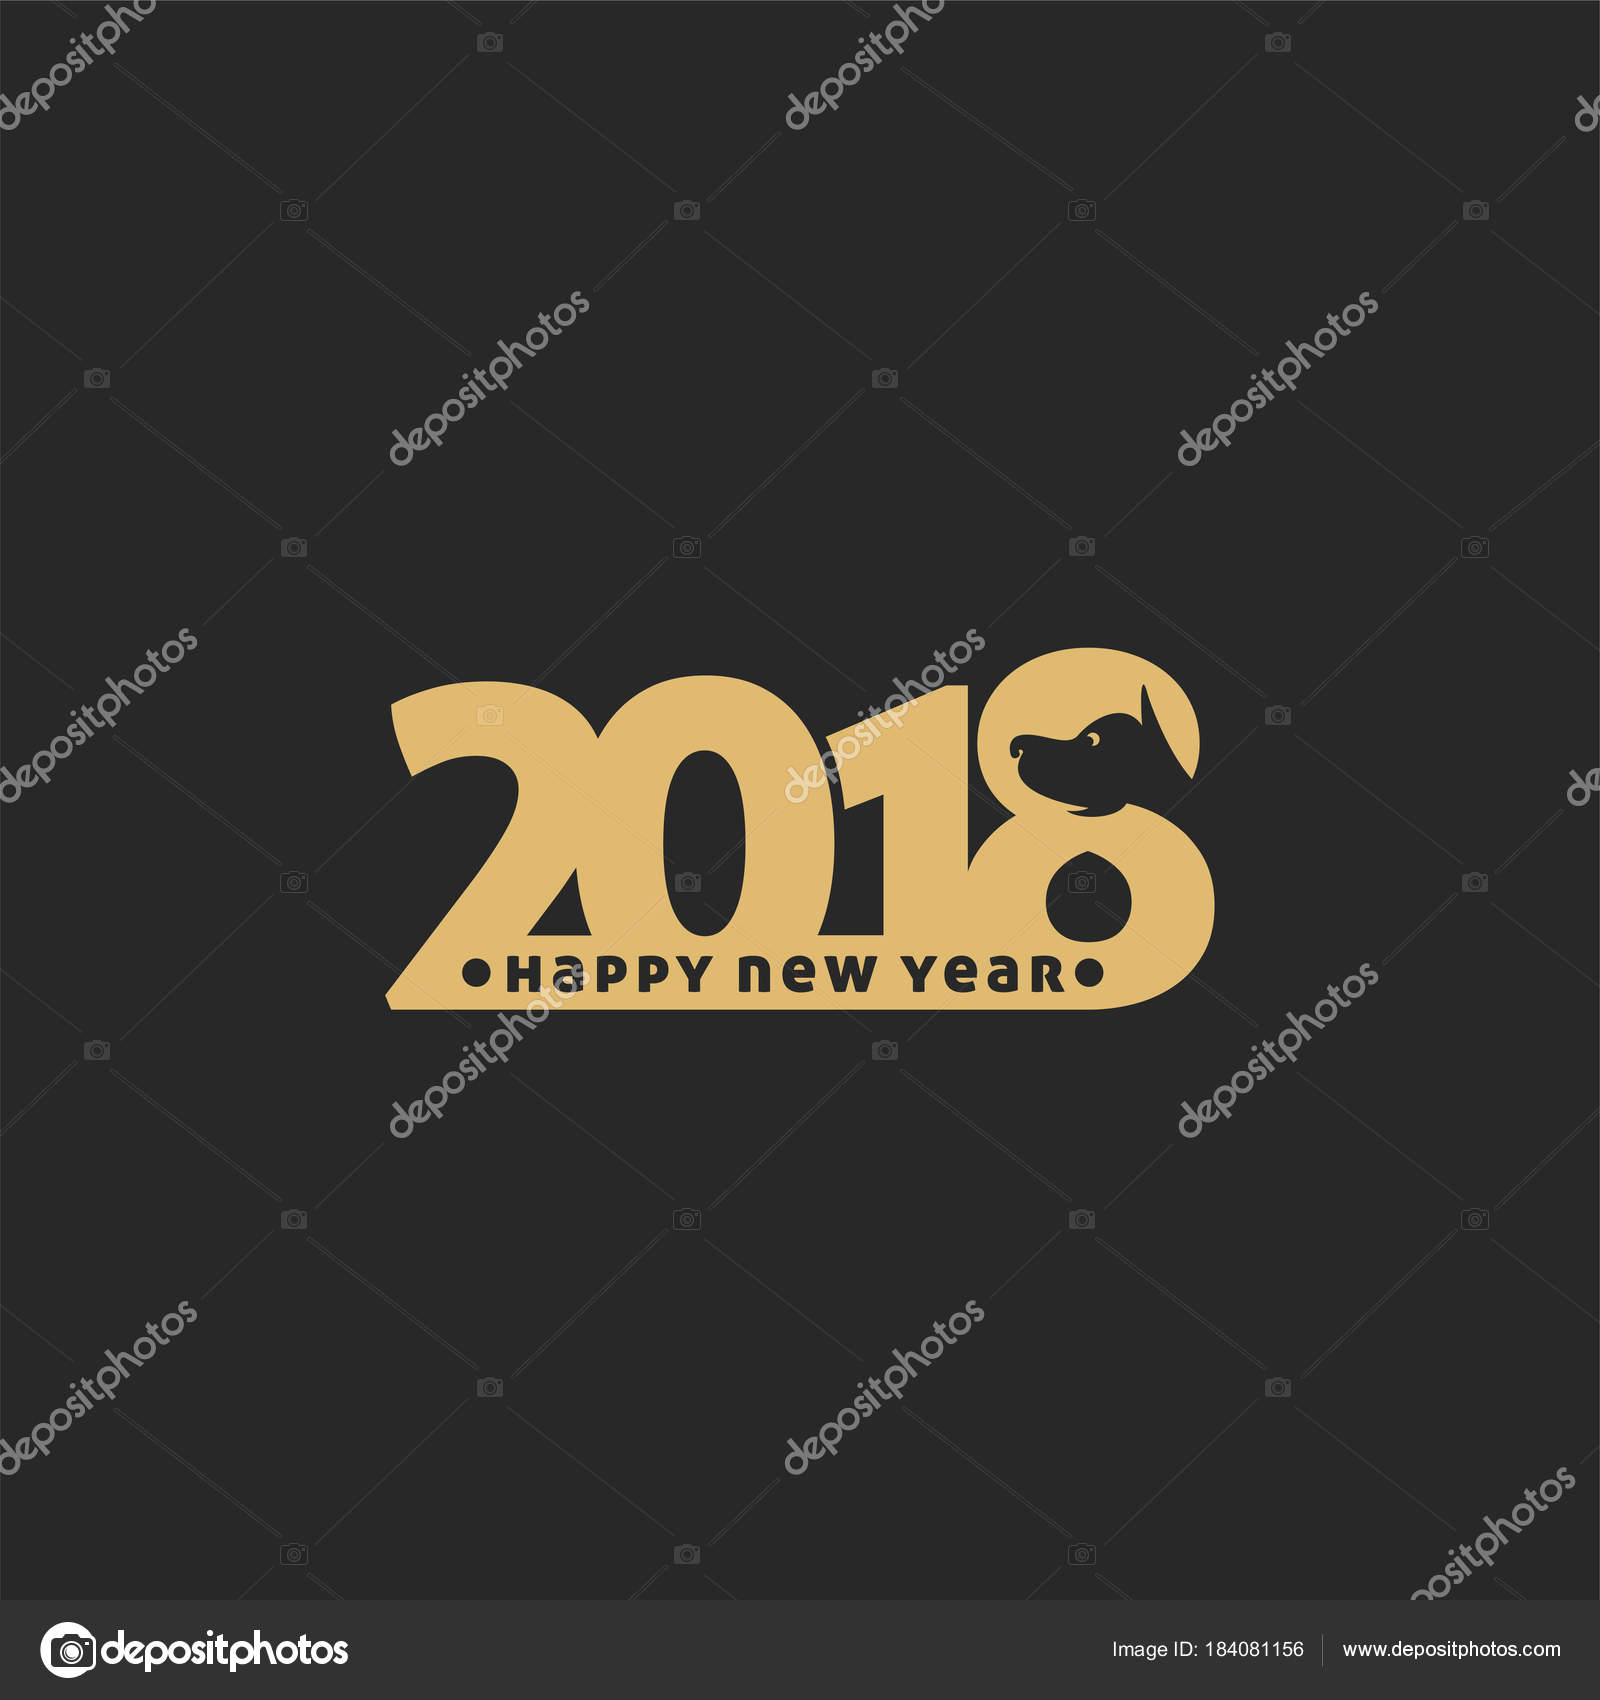 happy new year 2018 on black background vector illustration stock vector